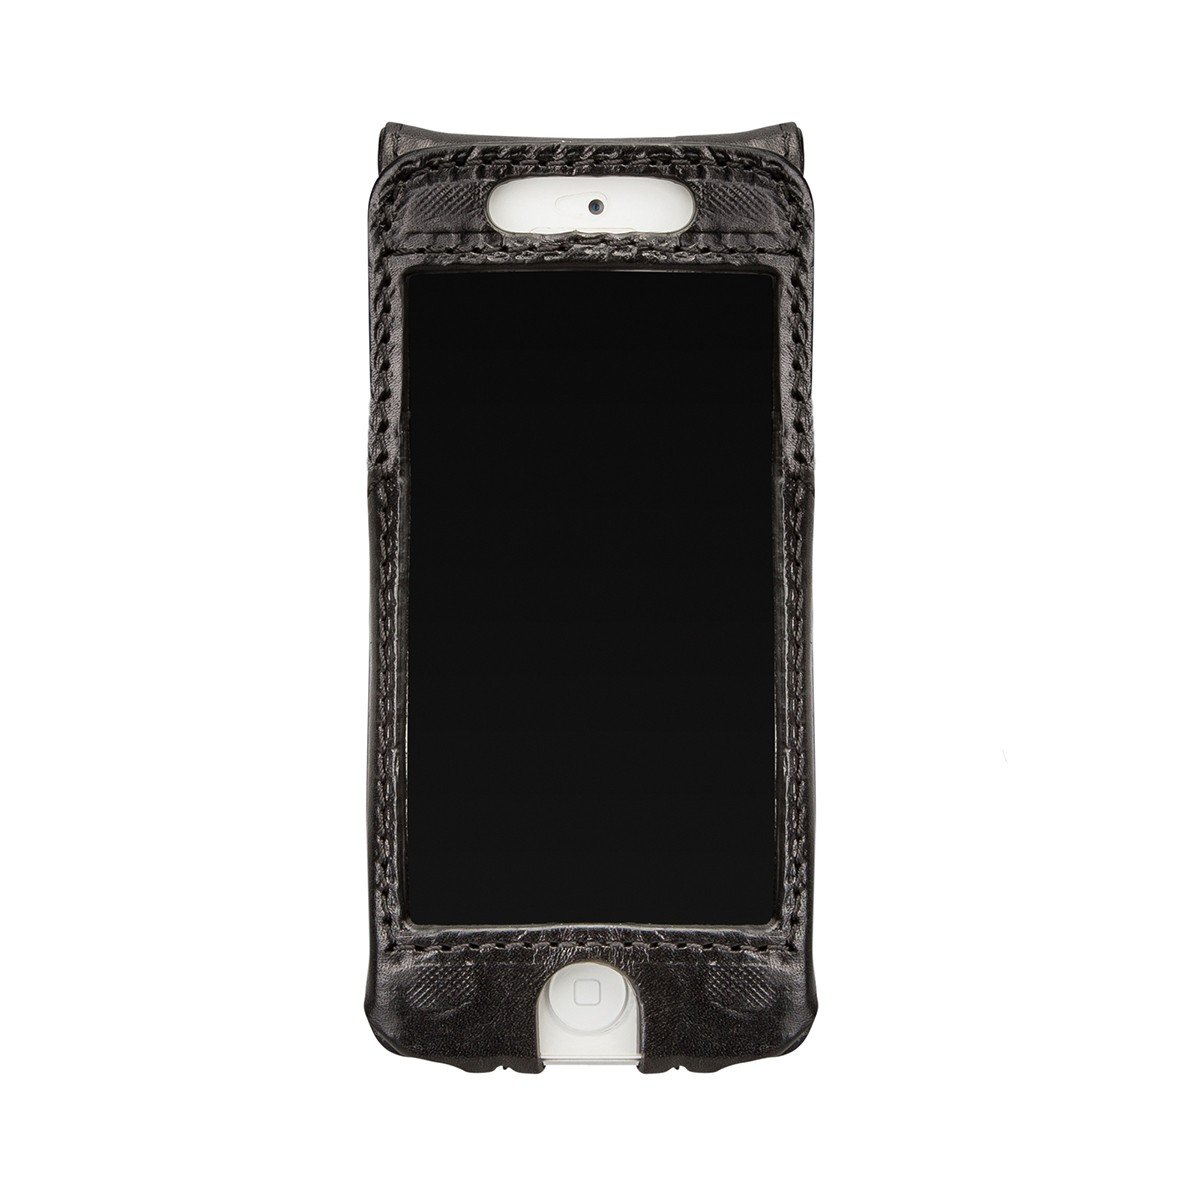 Maxwell Scott Personalized Iphone 5/5s Black Leather Flip Case for Cell (Renato) by Maxwell Scott Bags (Image #4)